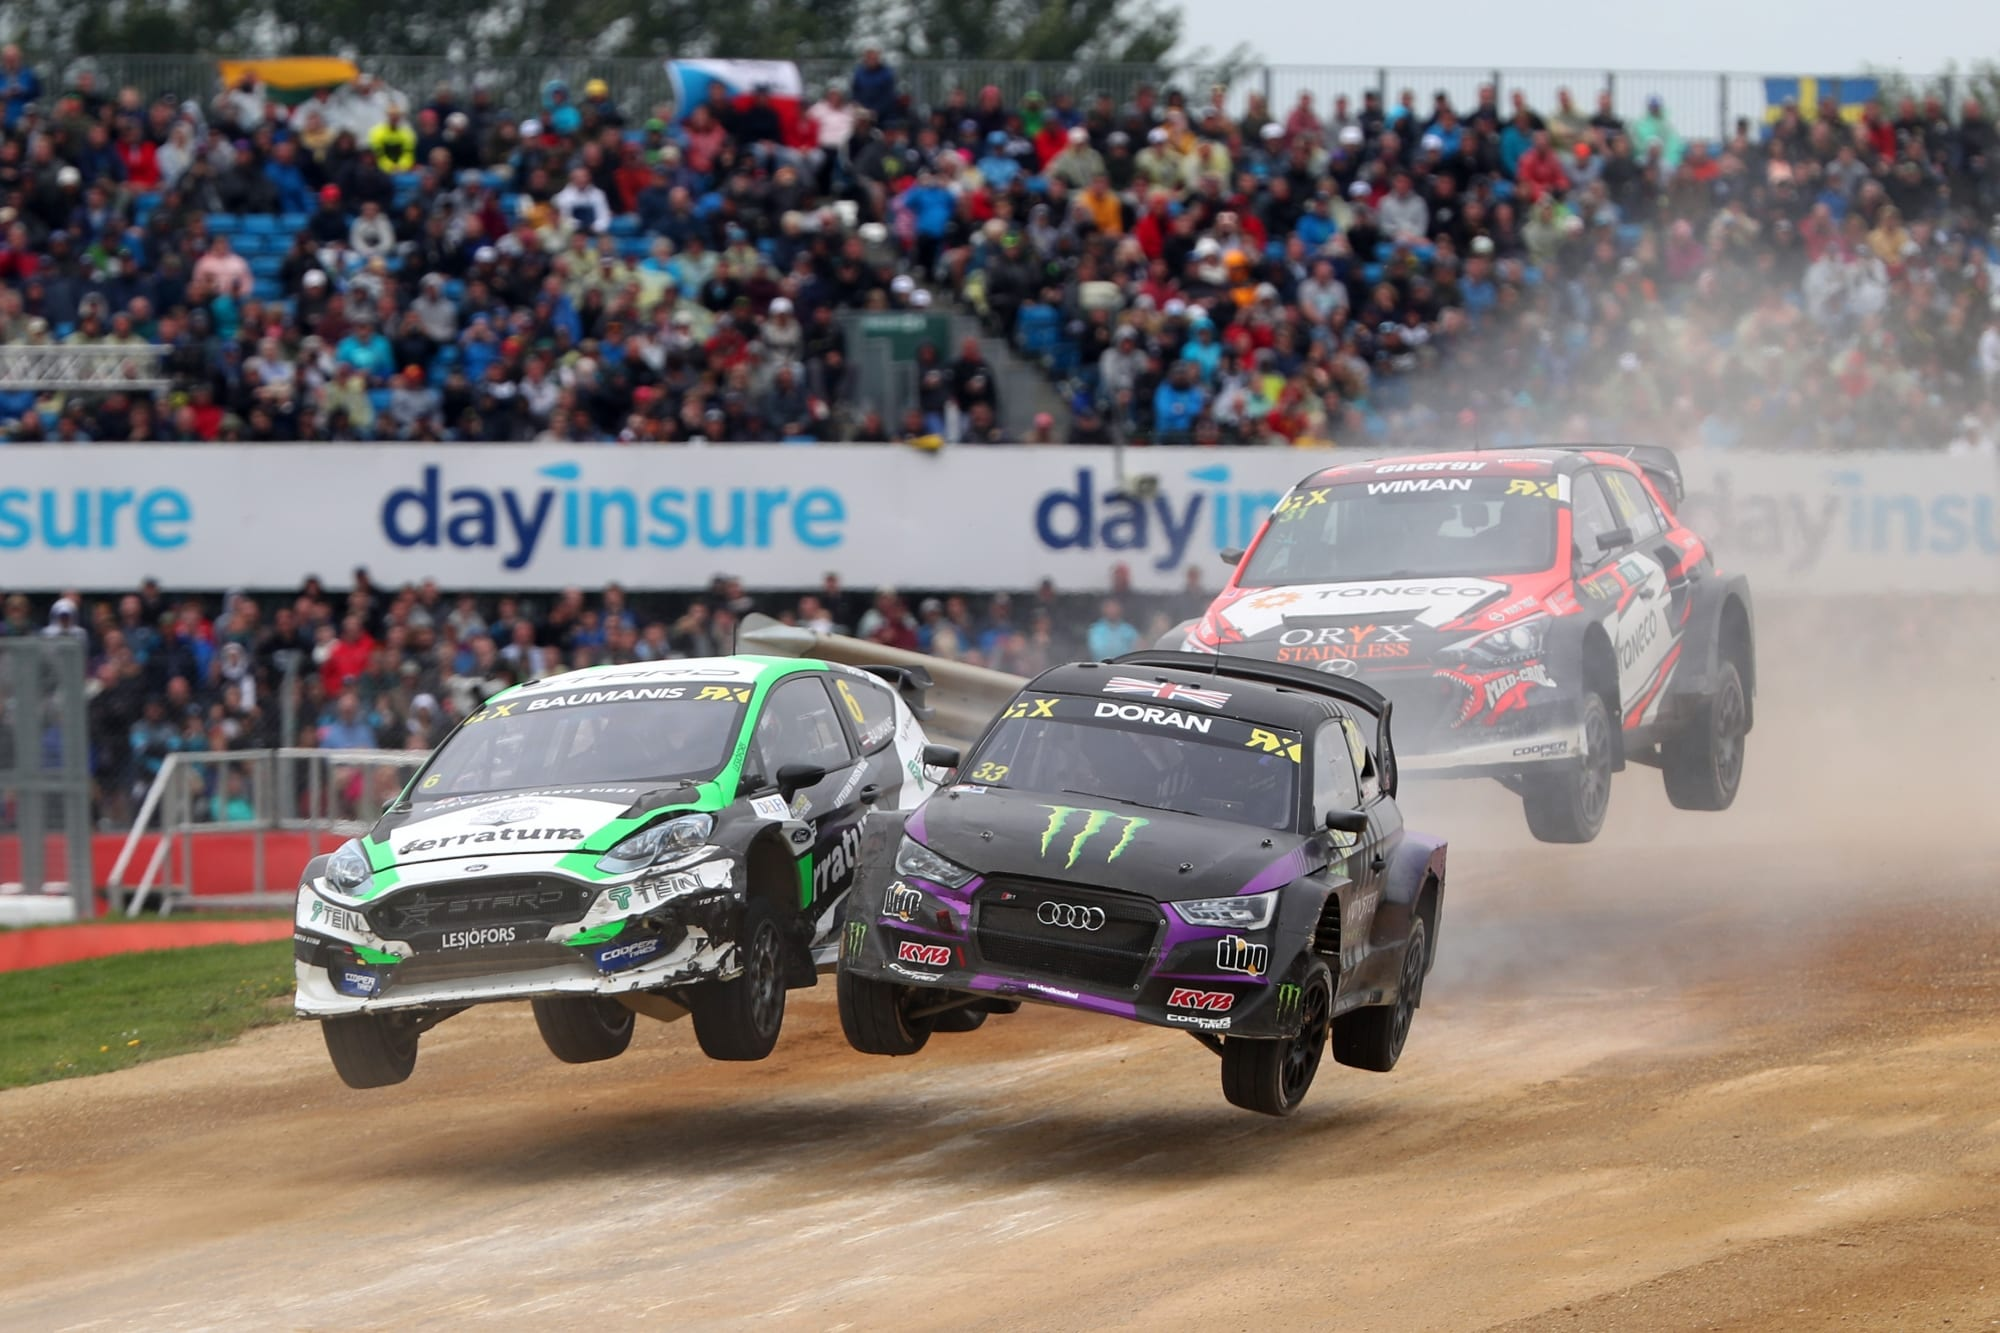 FIA World Rallycross Championship sponsored by Dayinsure